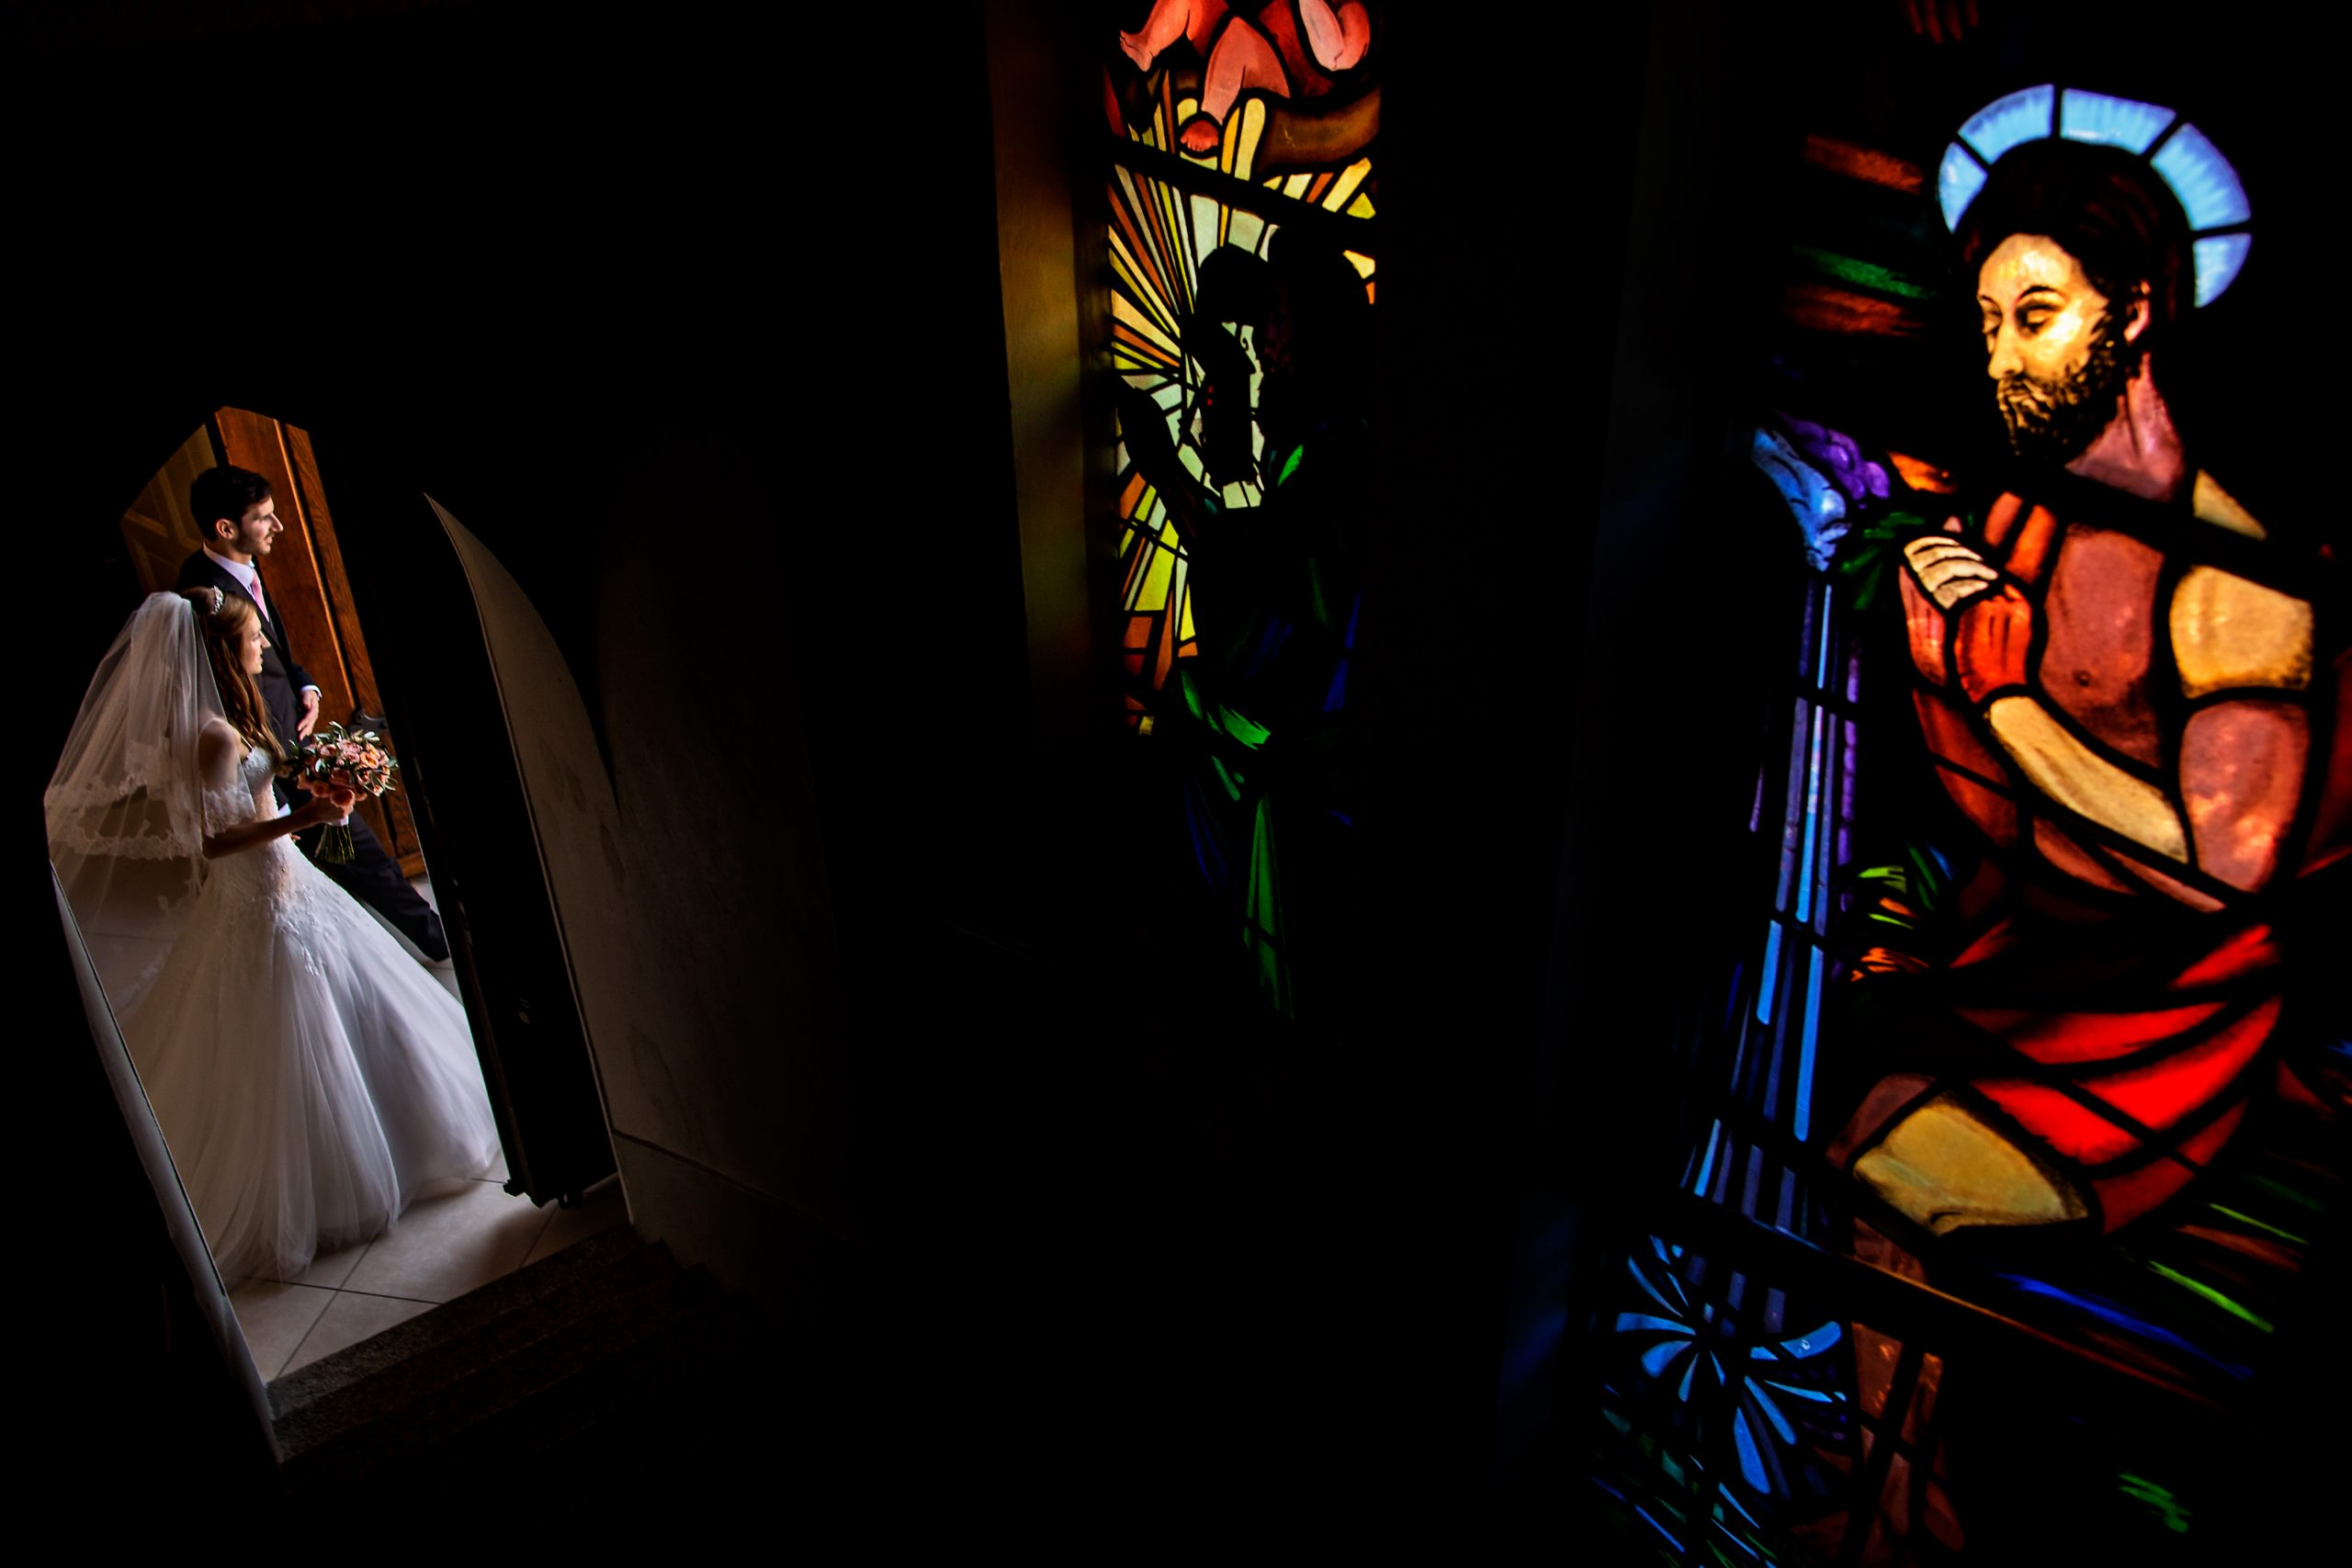 Bride and man walk through a doorway in church with stained glass windows